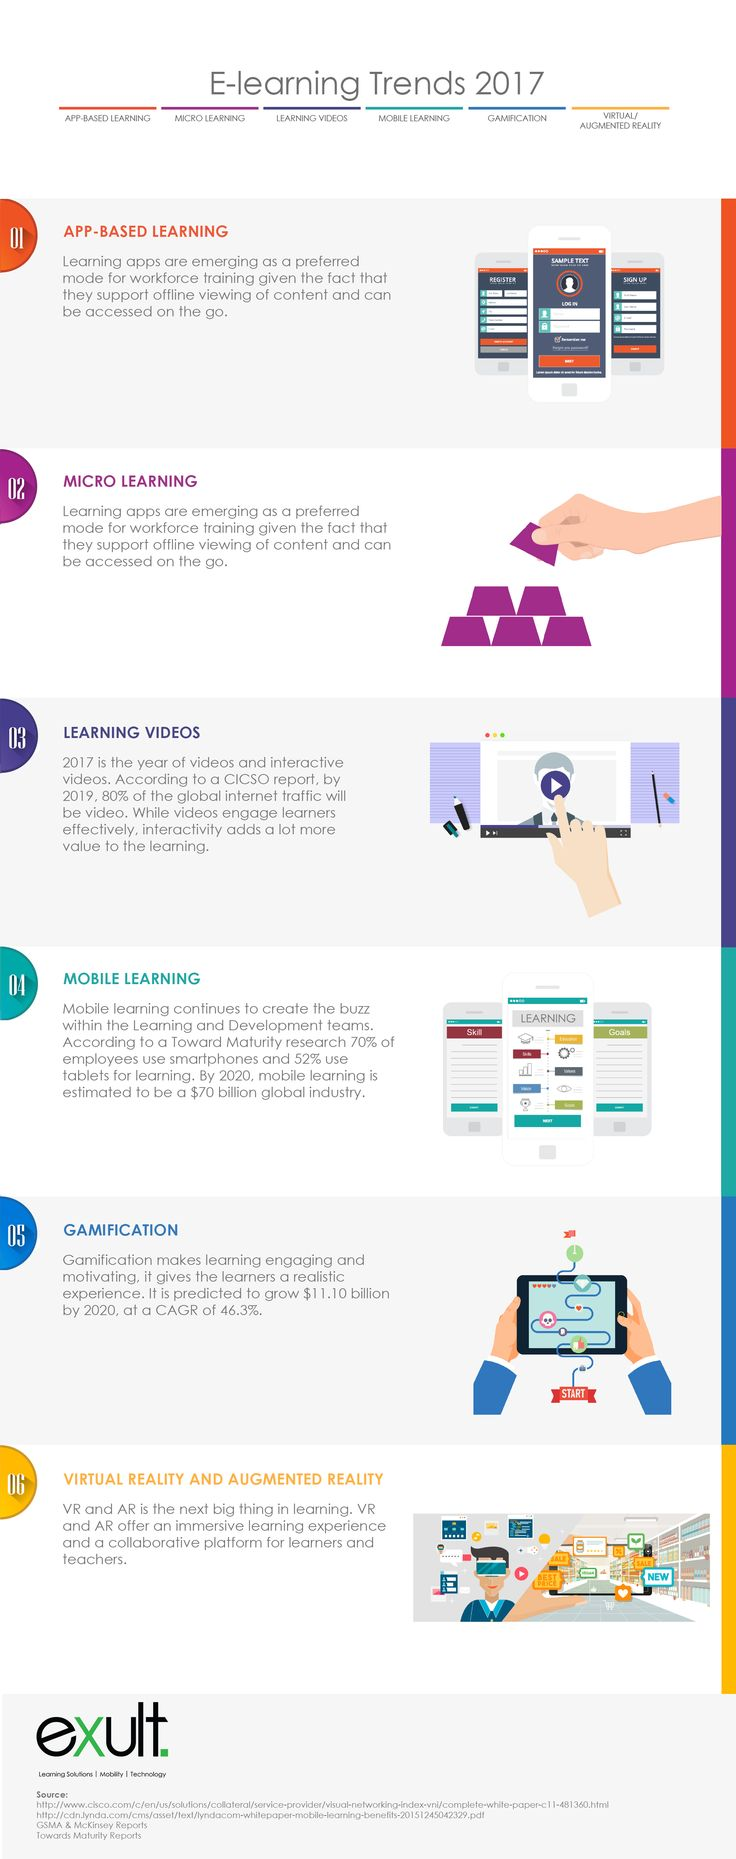 eLearning Trends 2017 Infographic - http://elearninginfographics.com/elearning-trends-2017-infographic/